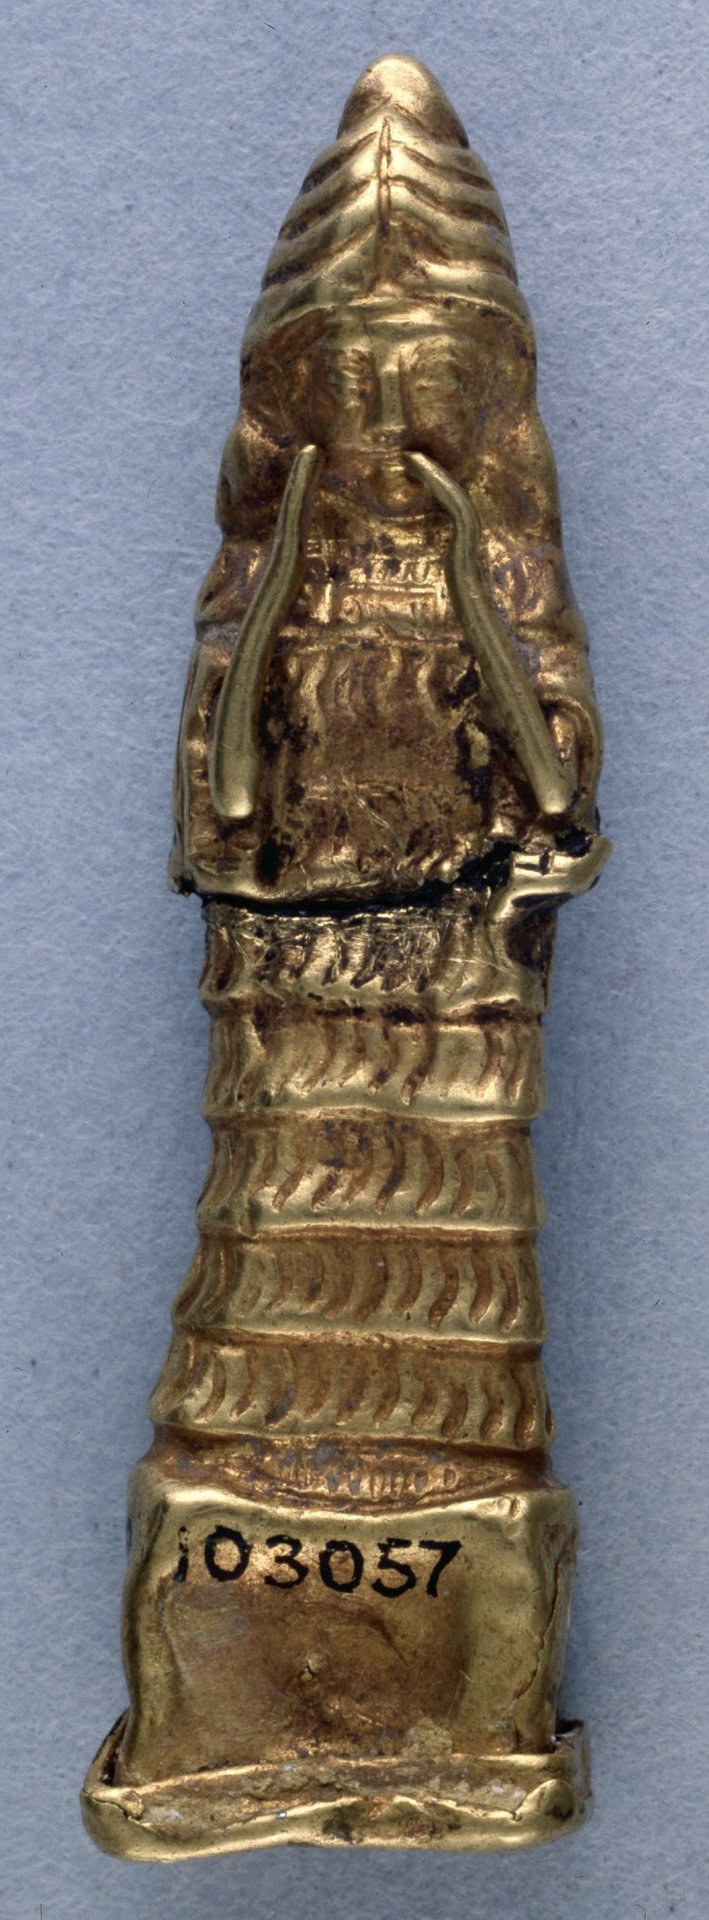 1c - golden artefact statue of Lama from ancient Mesopotamia, not much is known about Lama, she is mentioned several times in the texts but without much description detail, artefacts of the gods are shamefully being destroyed by Radical Islam, attempting to eradicate ancient evidence that directly contradicts the 7th century A.D. doctrines of Islam